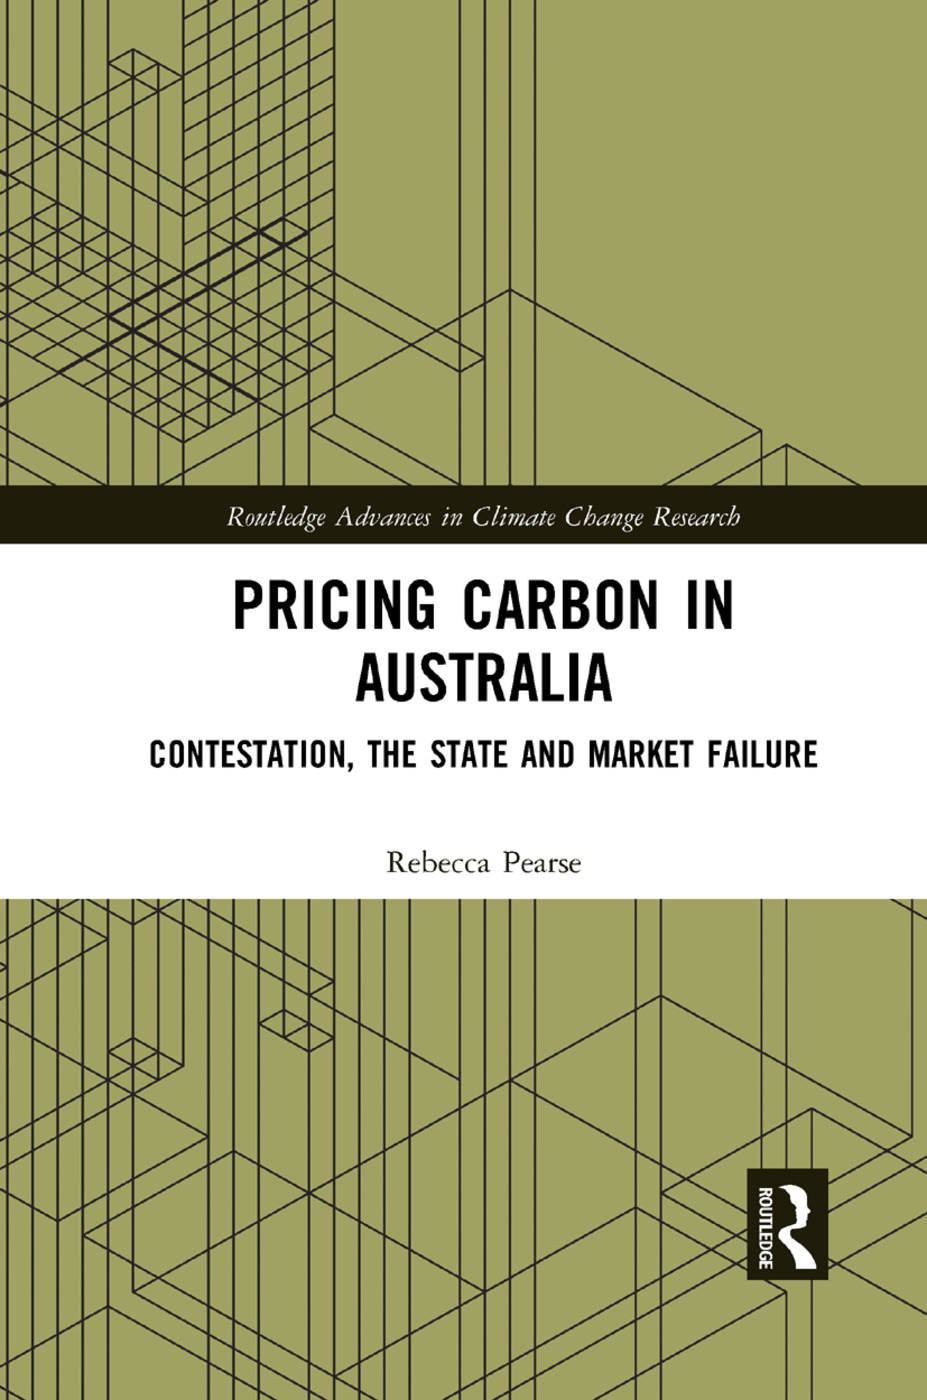 Pricing Carbon in Australia: Contestation, the State and Market Failure book cover